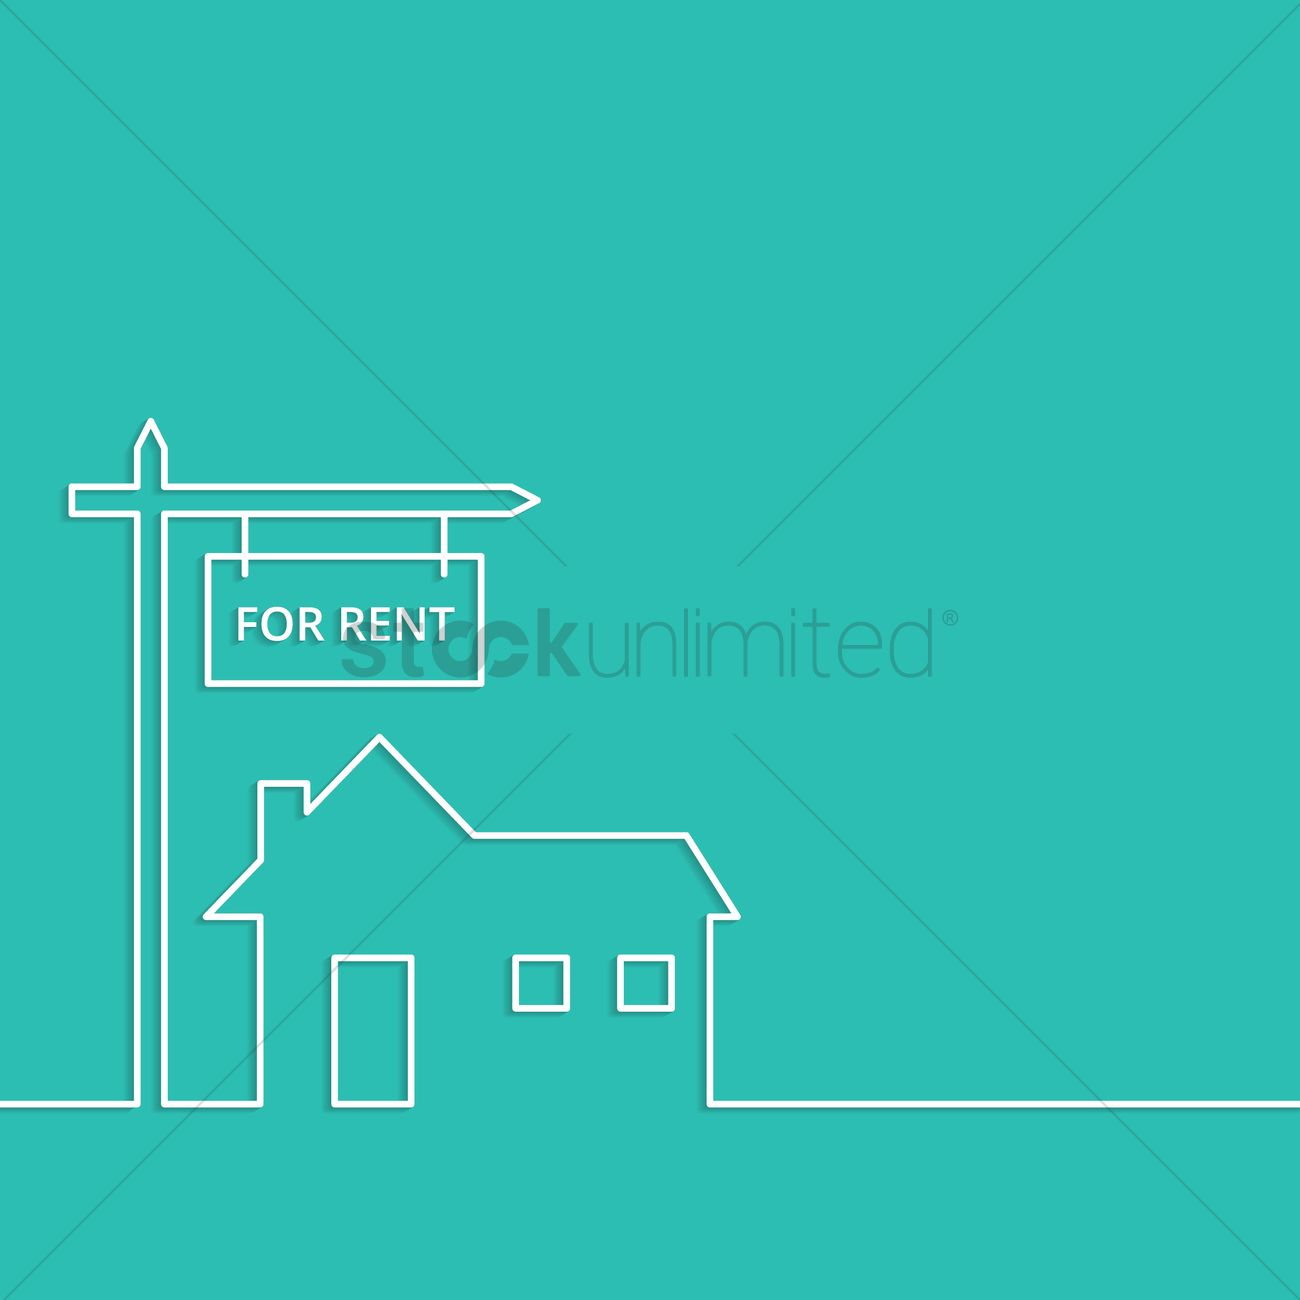 Rental Advertisement Template Vector Image StockUnlimited - For rent advertisement template